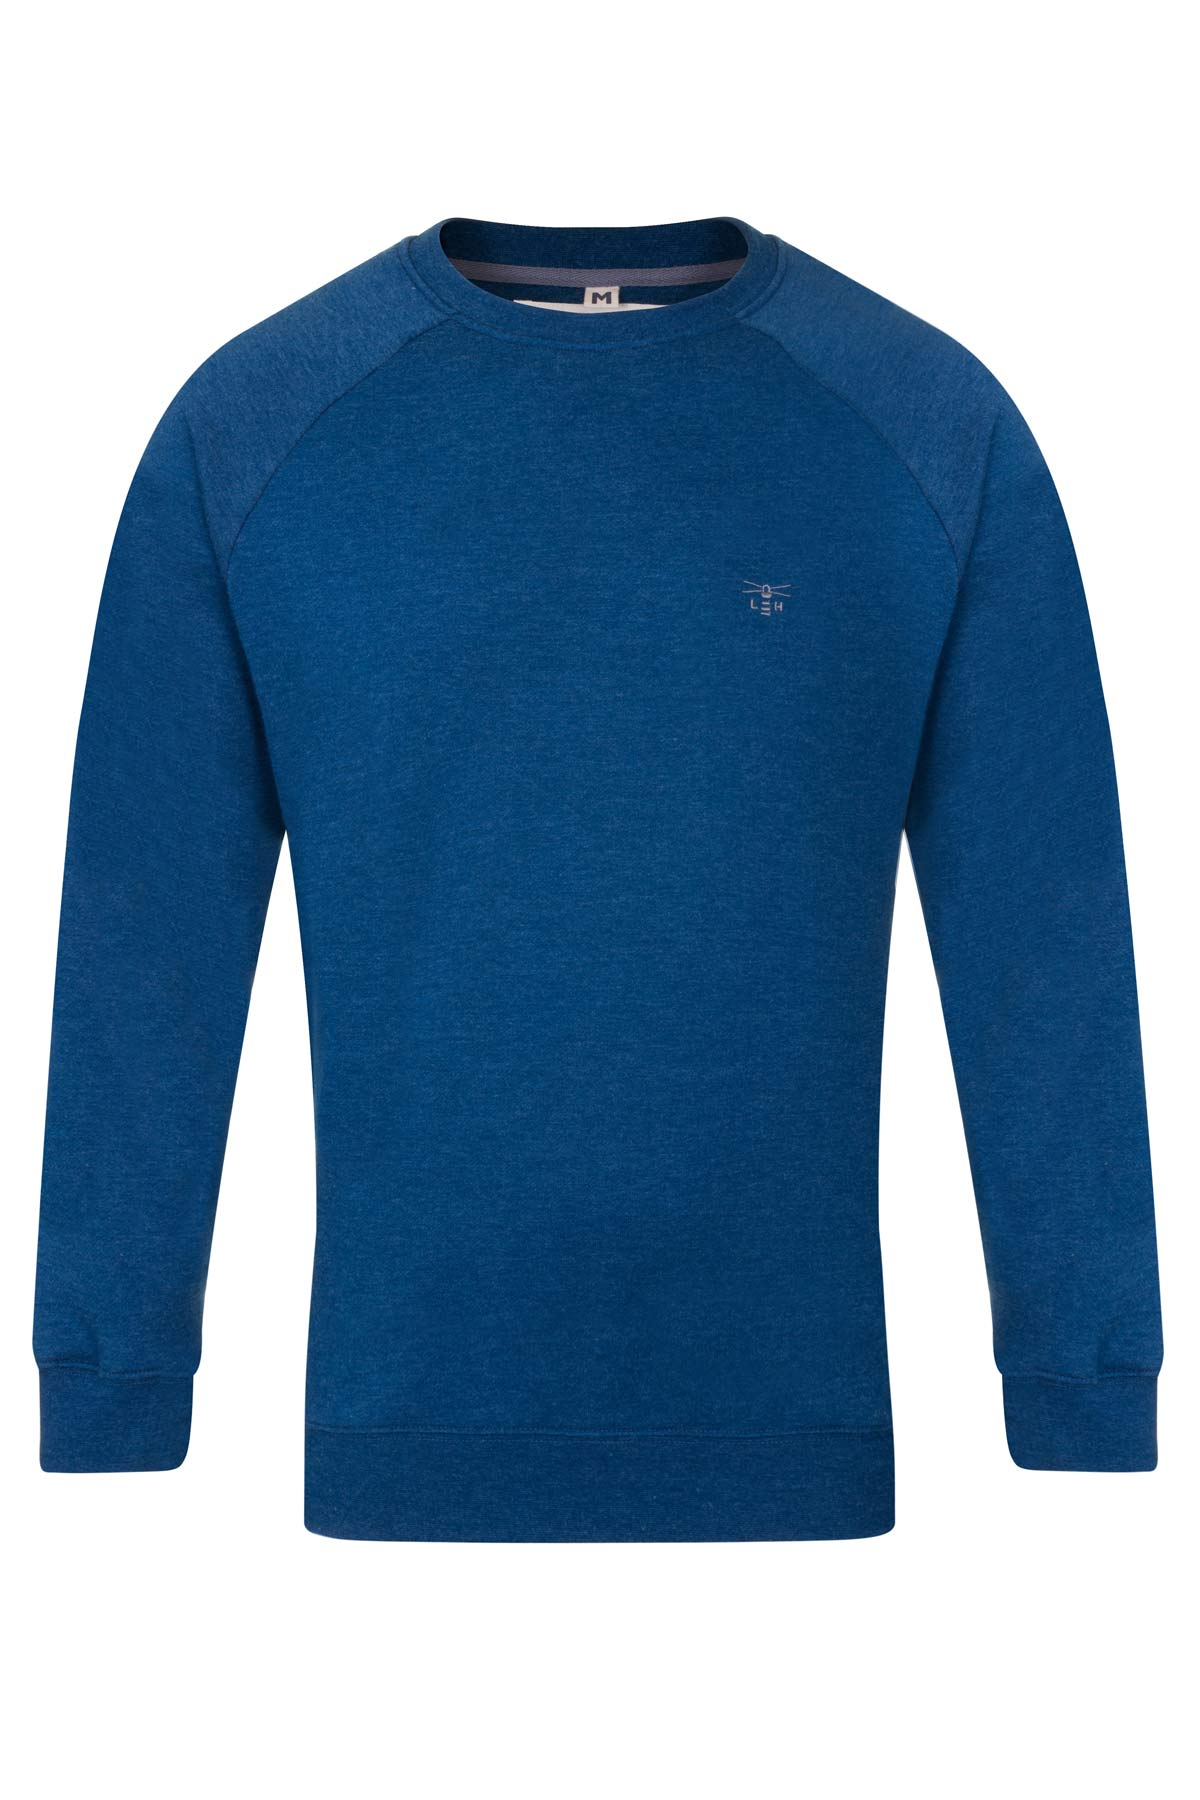 Lighthouse Crew Sweater Mens Sweaters Tops Target Dry